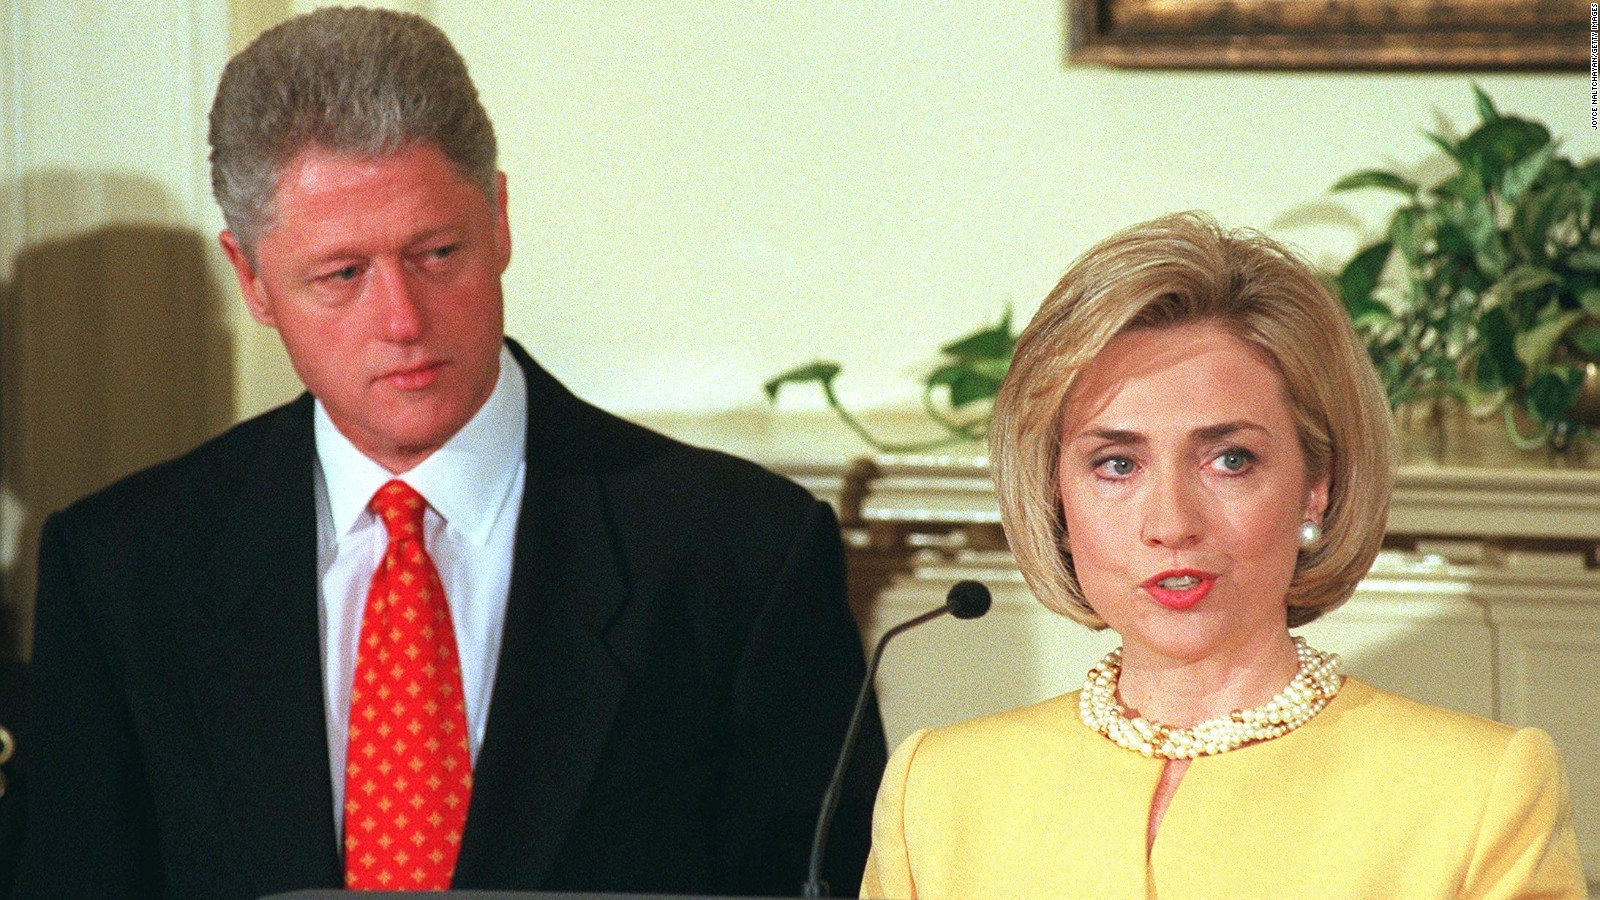 a biography of bill and hillary clinton Trump to intensify attacks on hillary clinton over husband's accusers donald trump believes his ploy at the oct nine presidential discussion to invite 3 ladies who claim they were raped by former president bill.